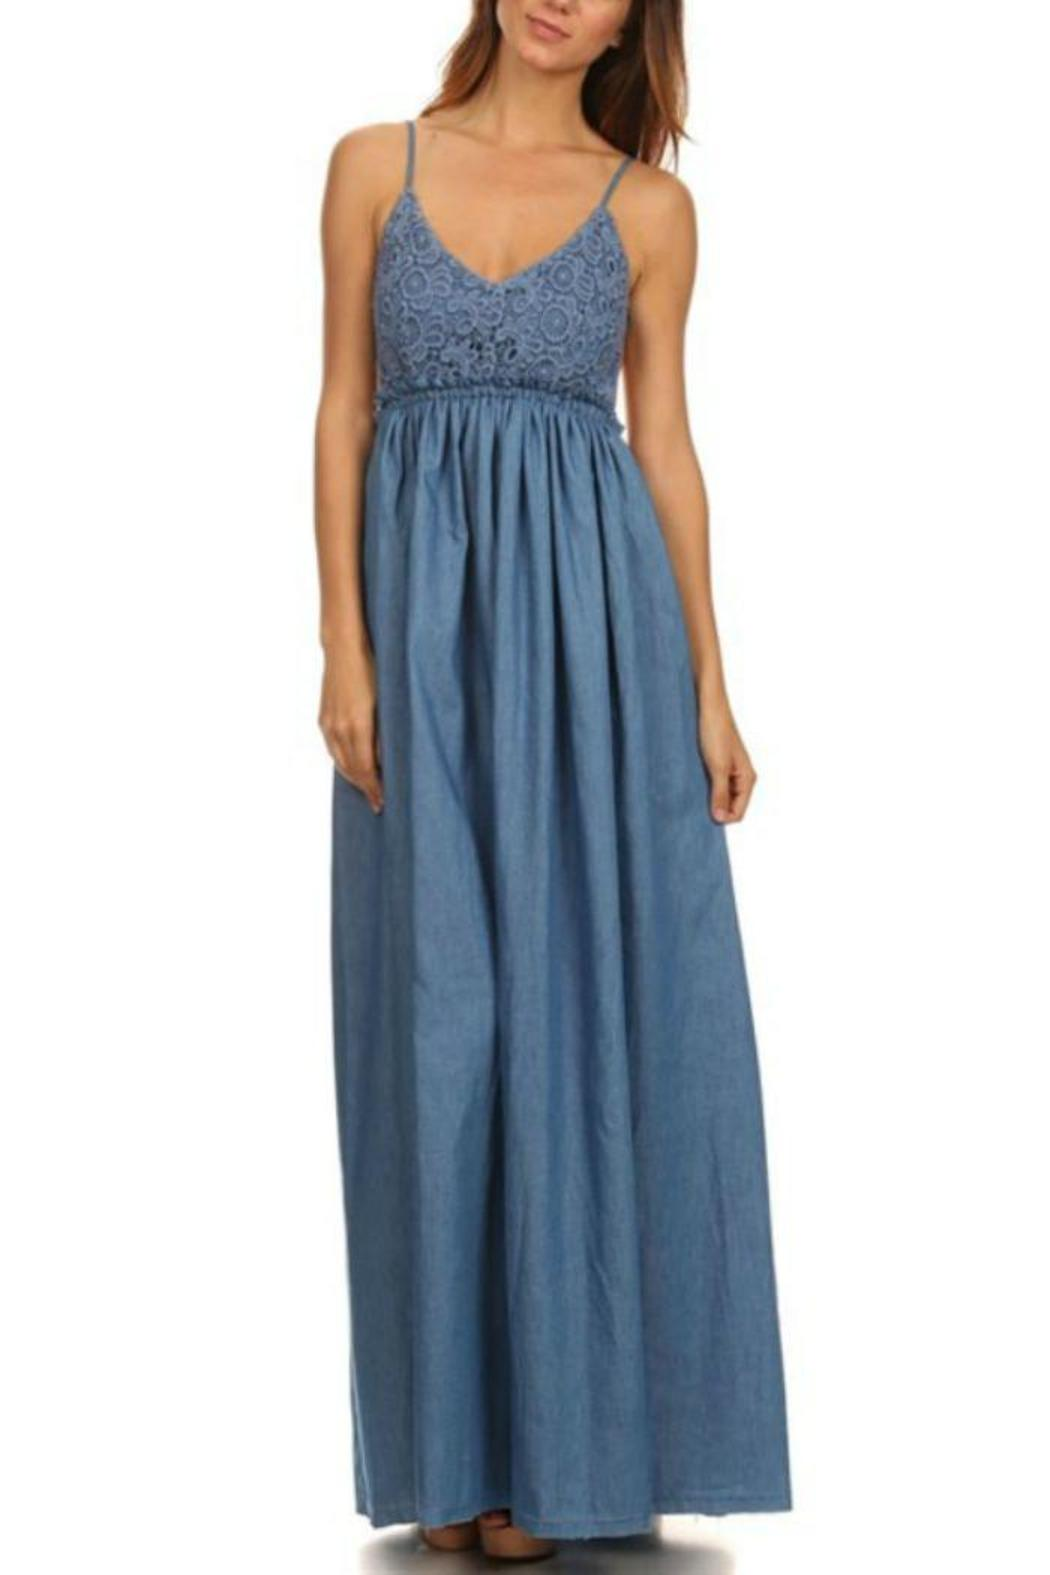 Go long in stylish maxi dresses for every occasion. Free shipping on orders of $50 or more! Agaci.